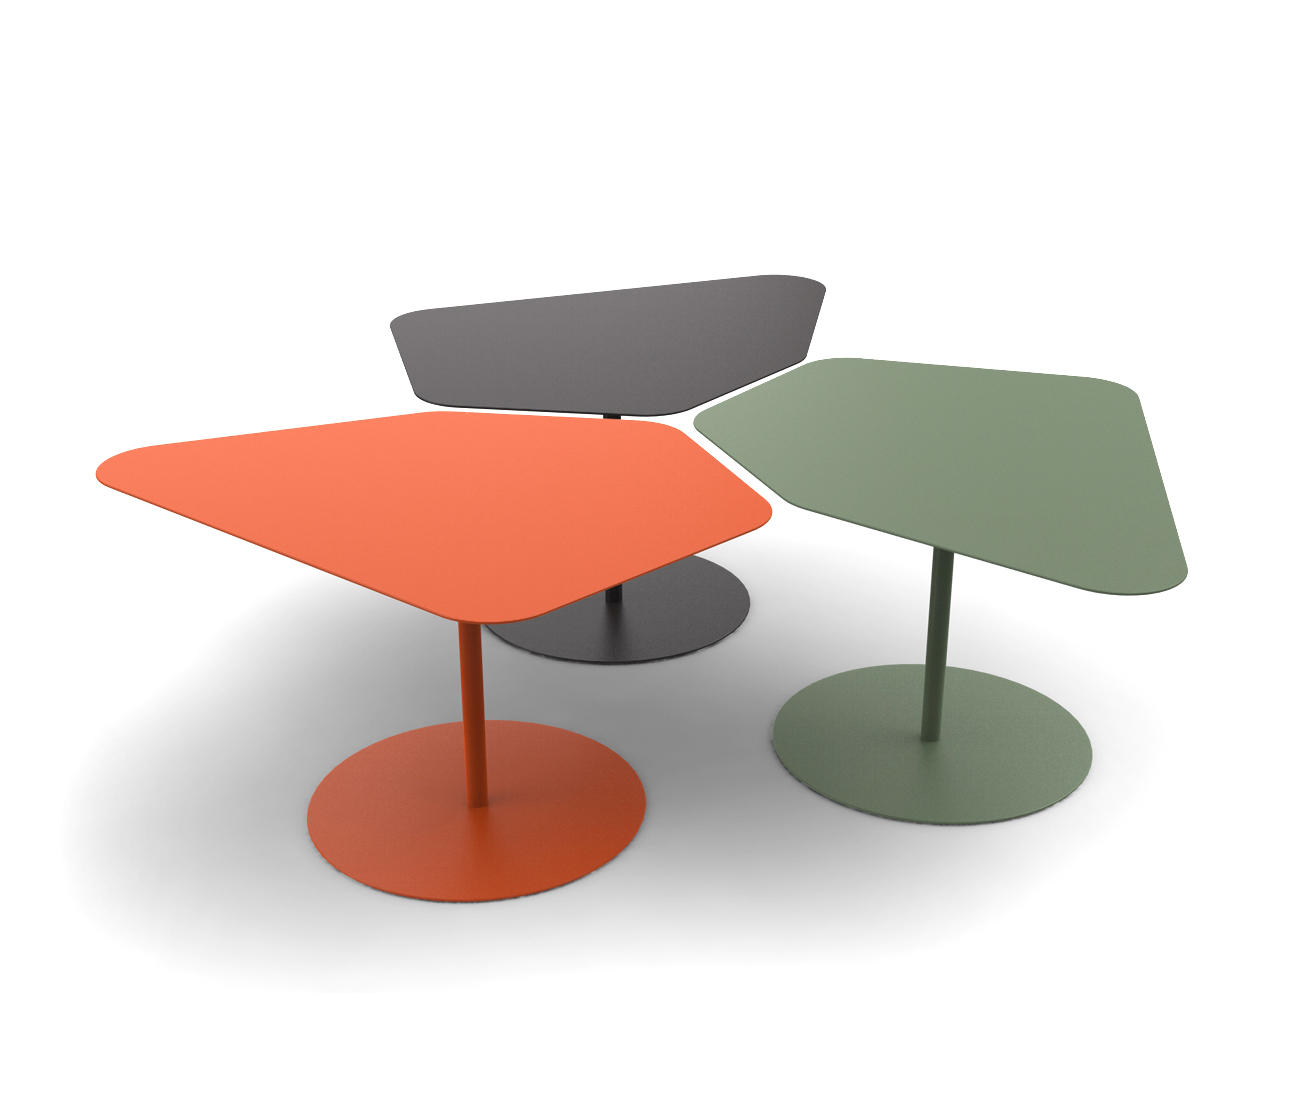 Kona low table coffee tables from mati re grise architonic - Table grise conforama ...